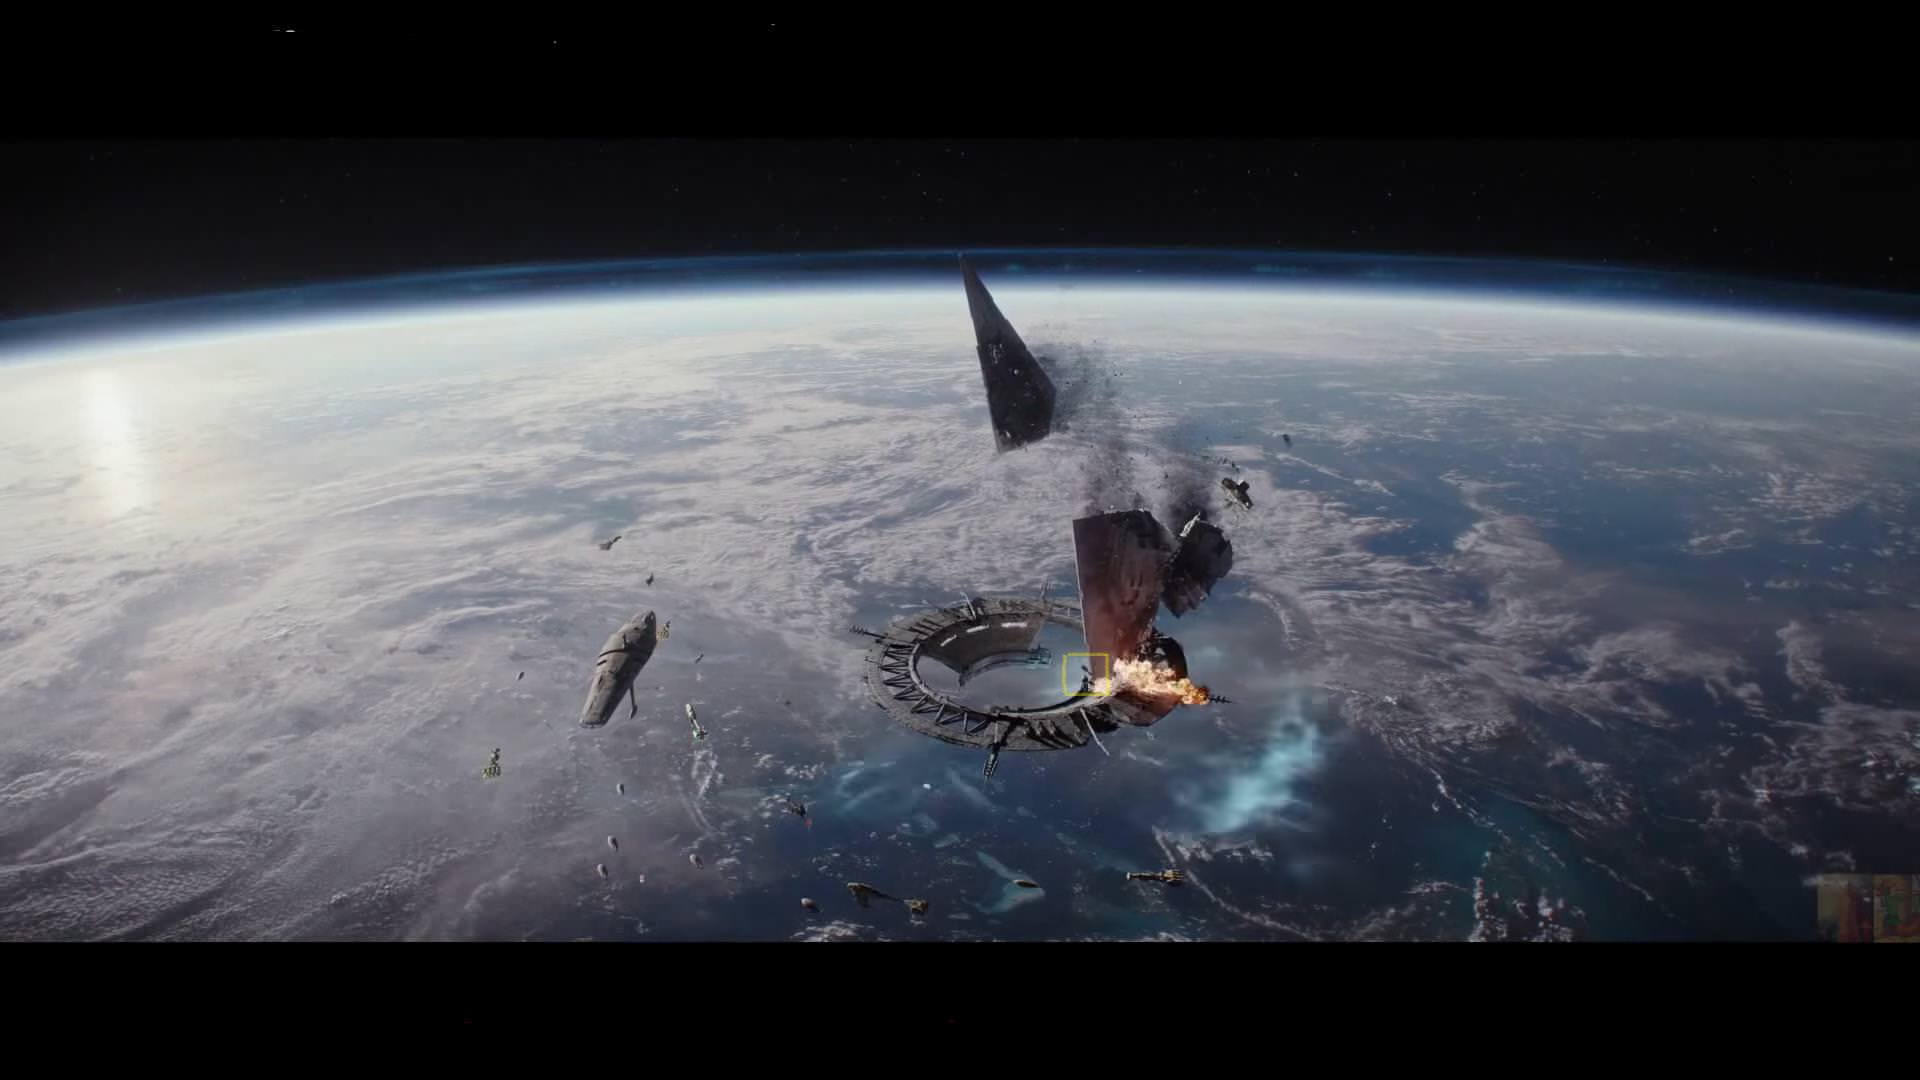 Only now -after having rewatched the Battle of Scarif like a hundred times- did I notice that the Hammerhead Corvette wa...